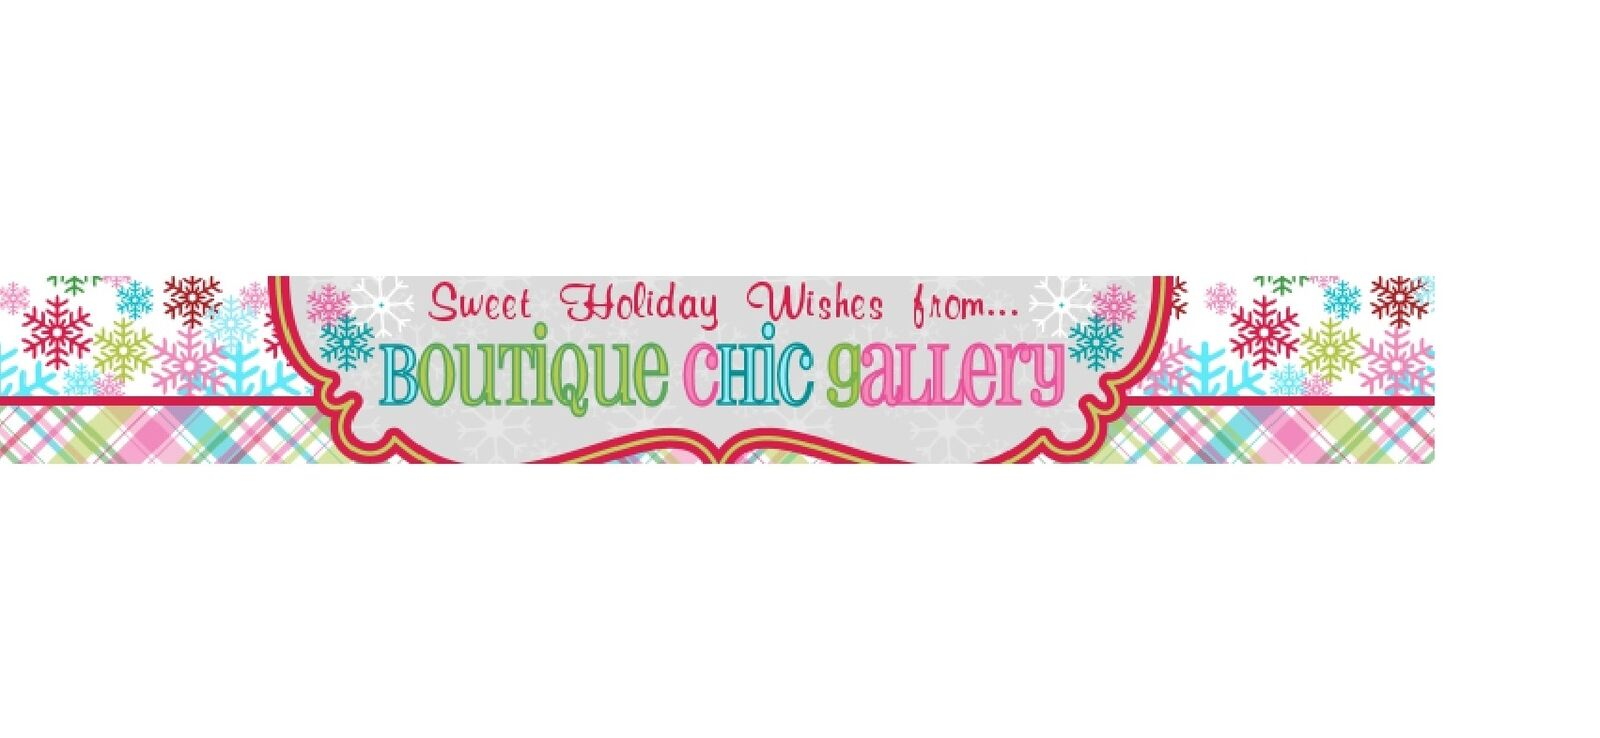 Boutique Chic Gallery